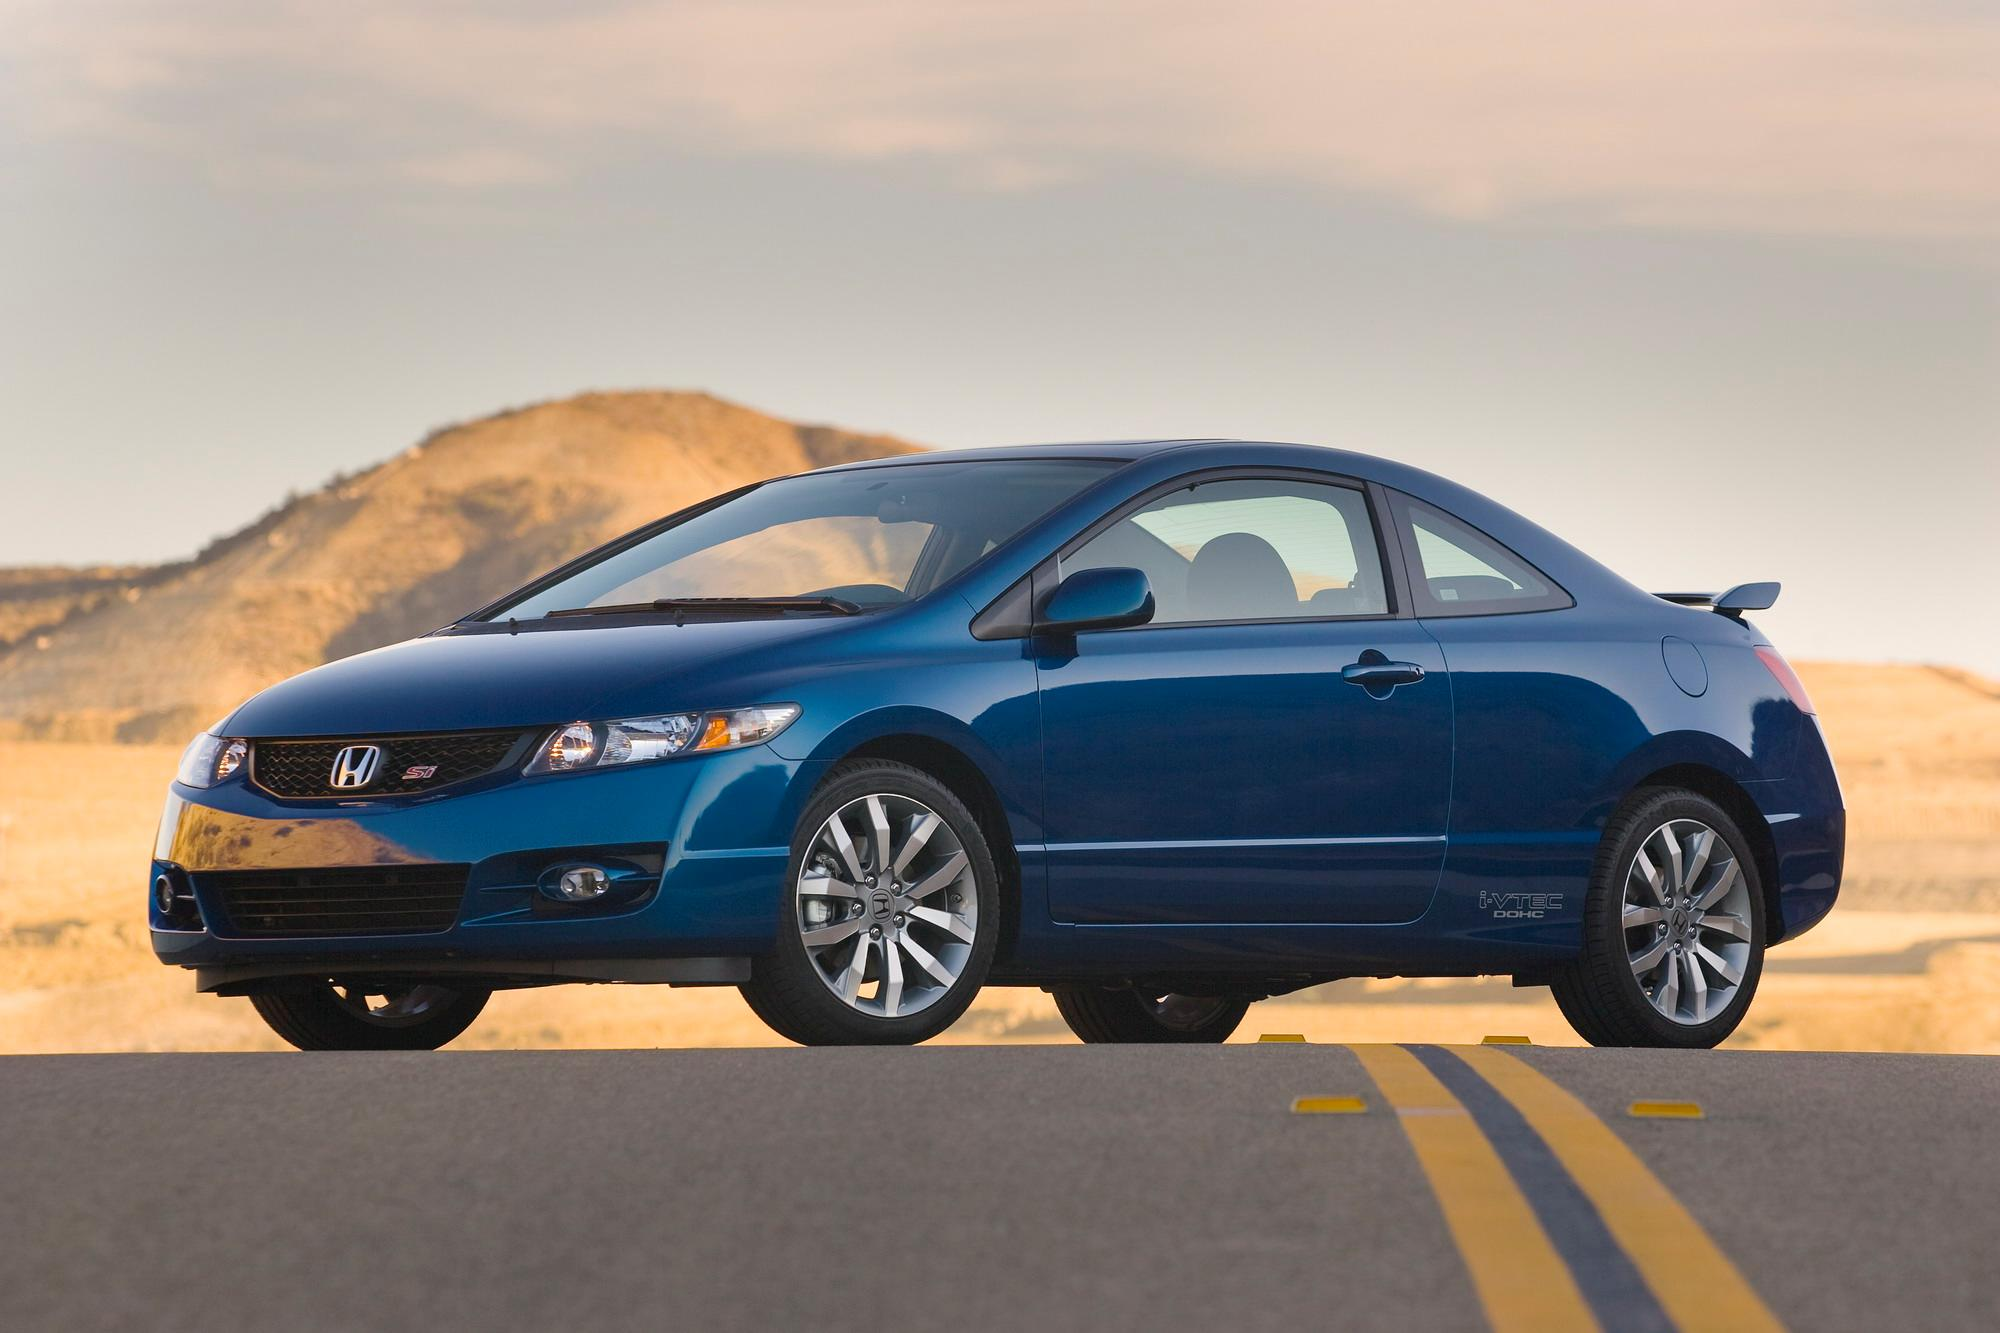 2010 Honda Civic | Top Speed. »